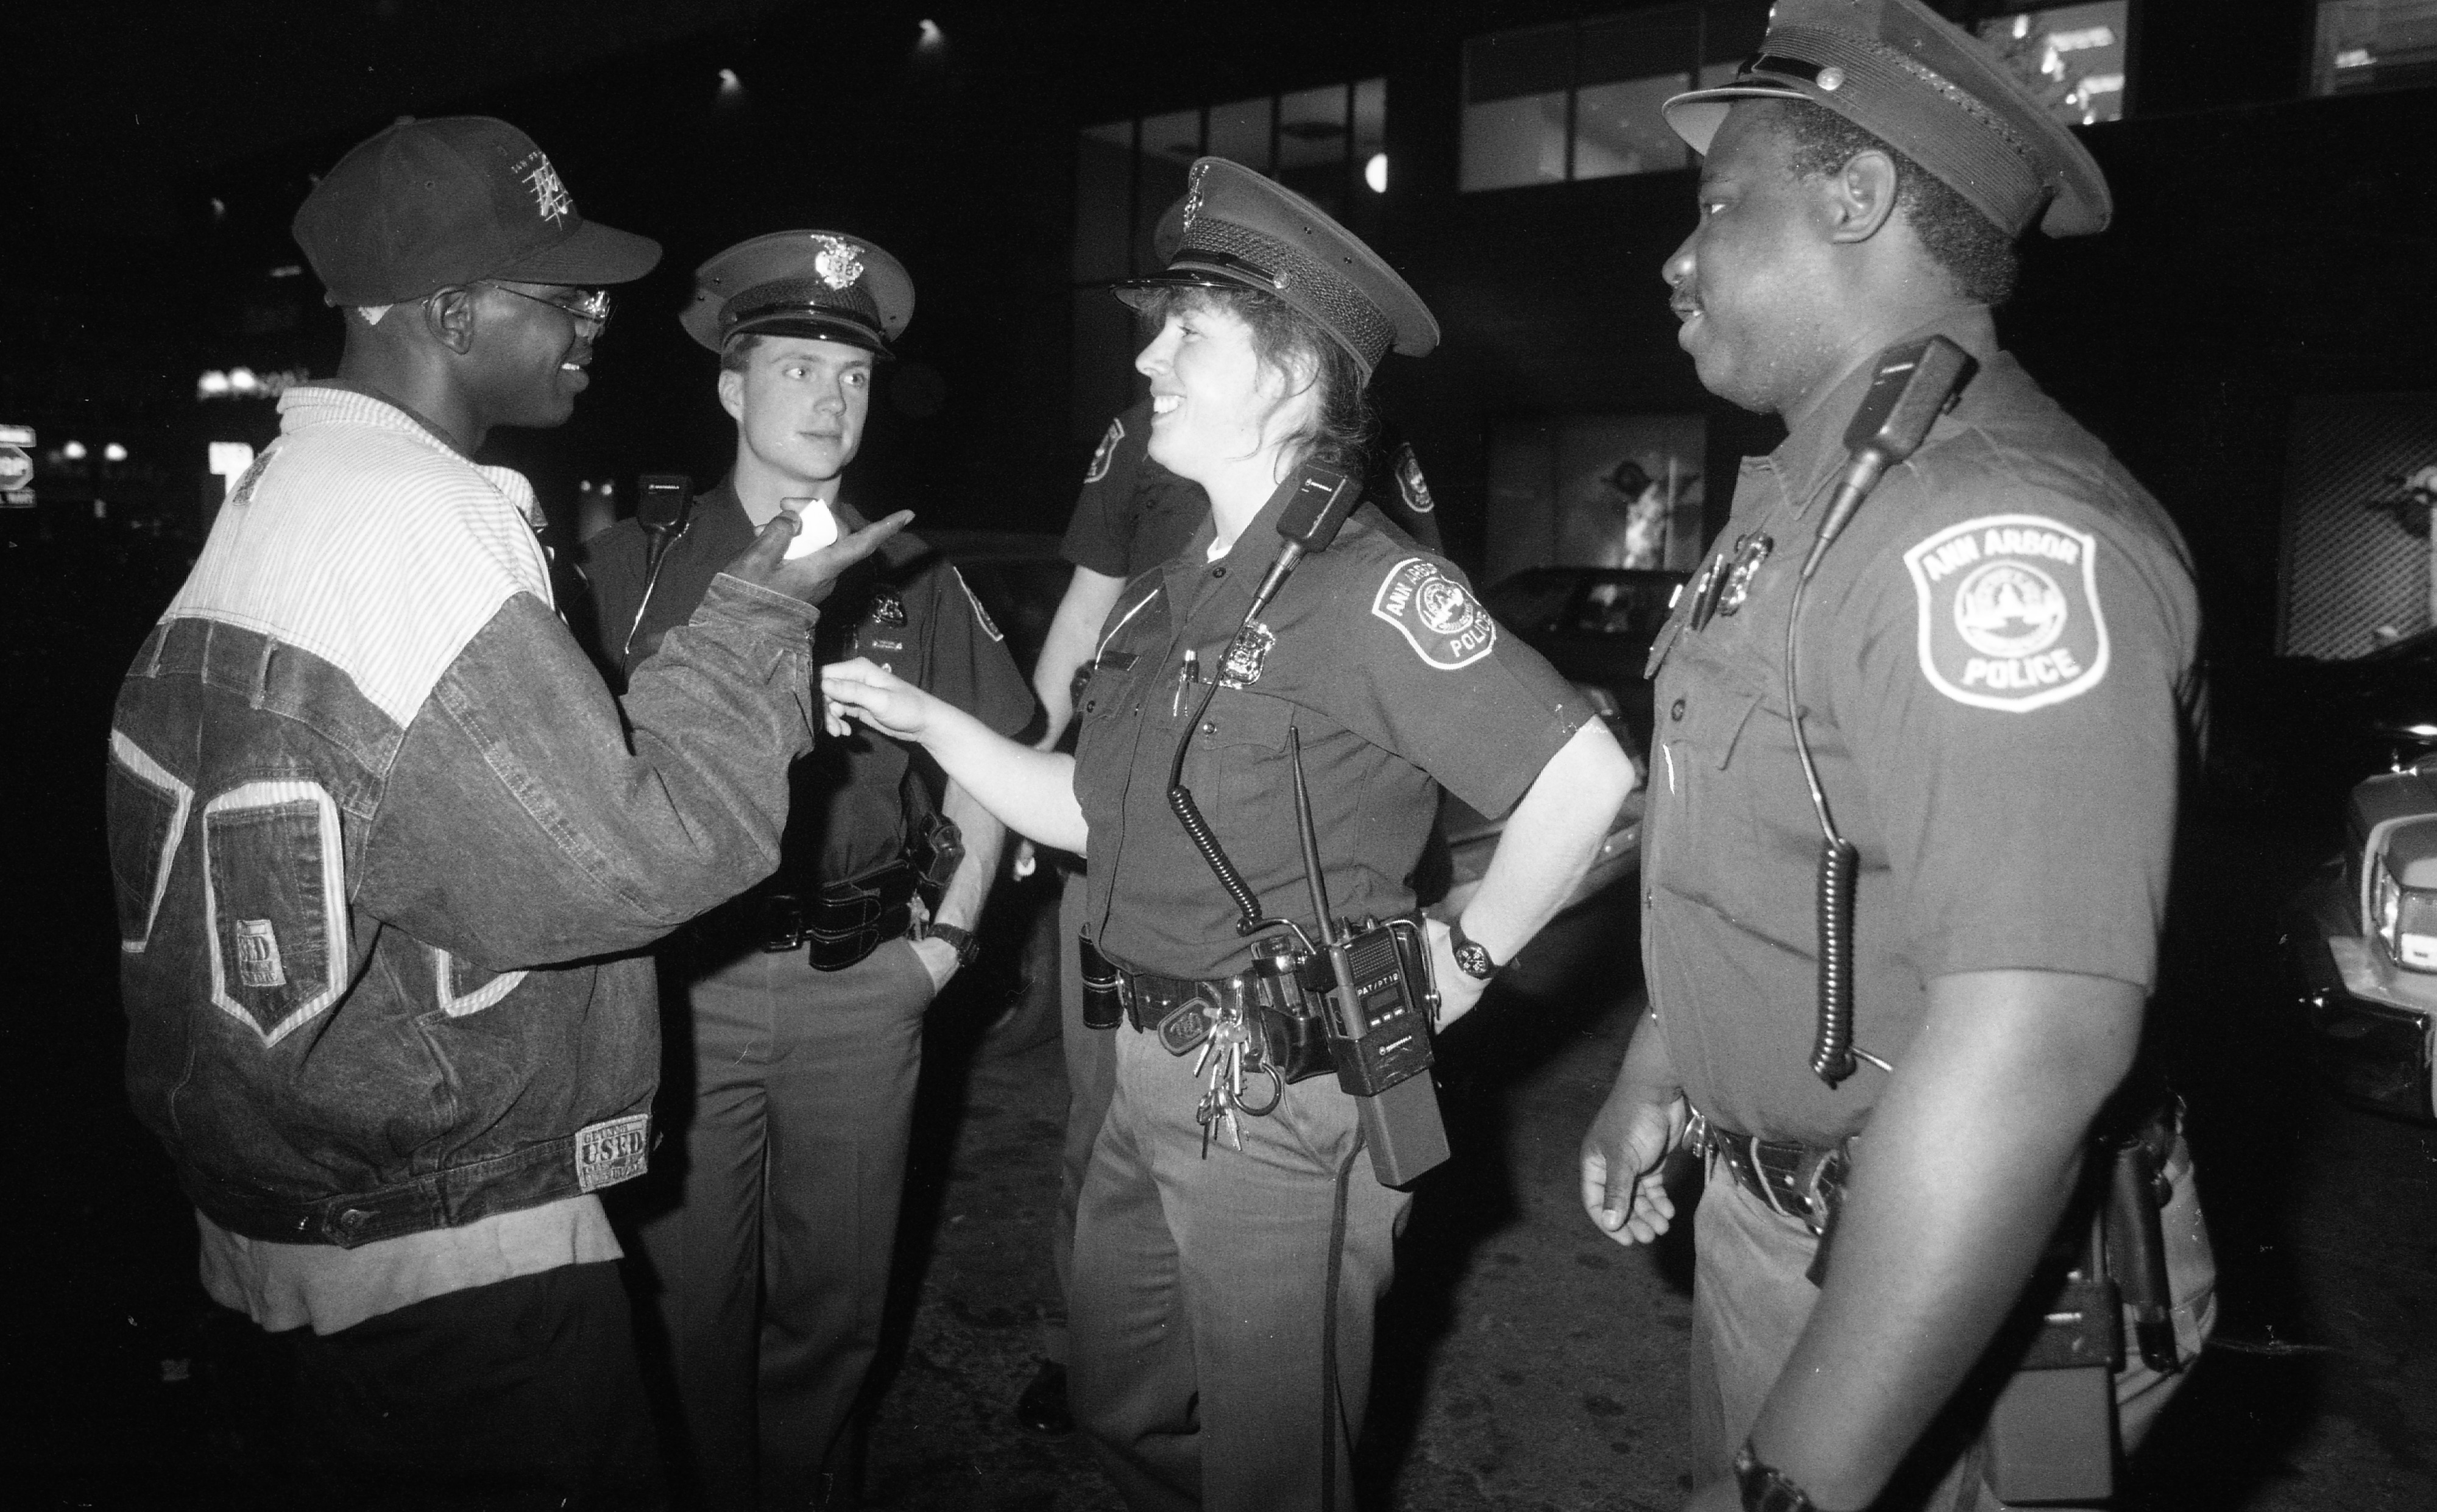 Ann Arbor Police Department Special Problems Unit Officers Engage Community, April 1990 image